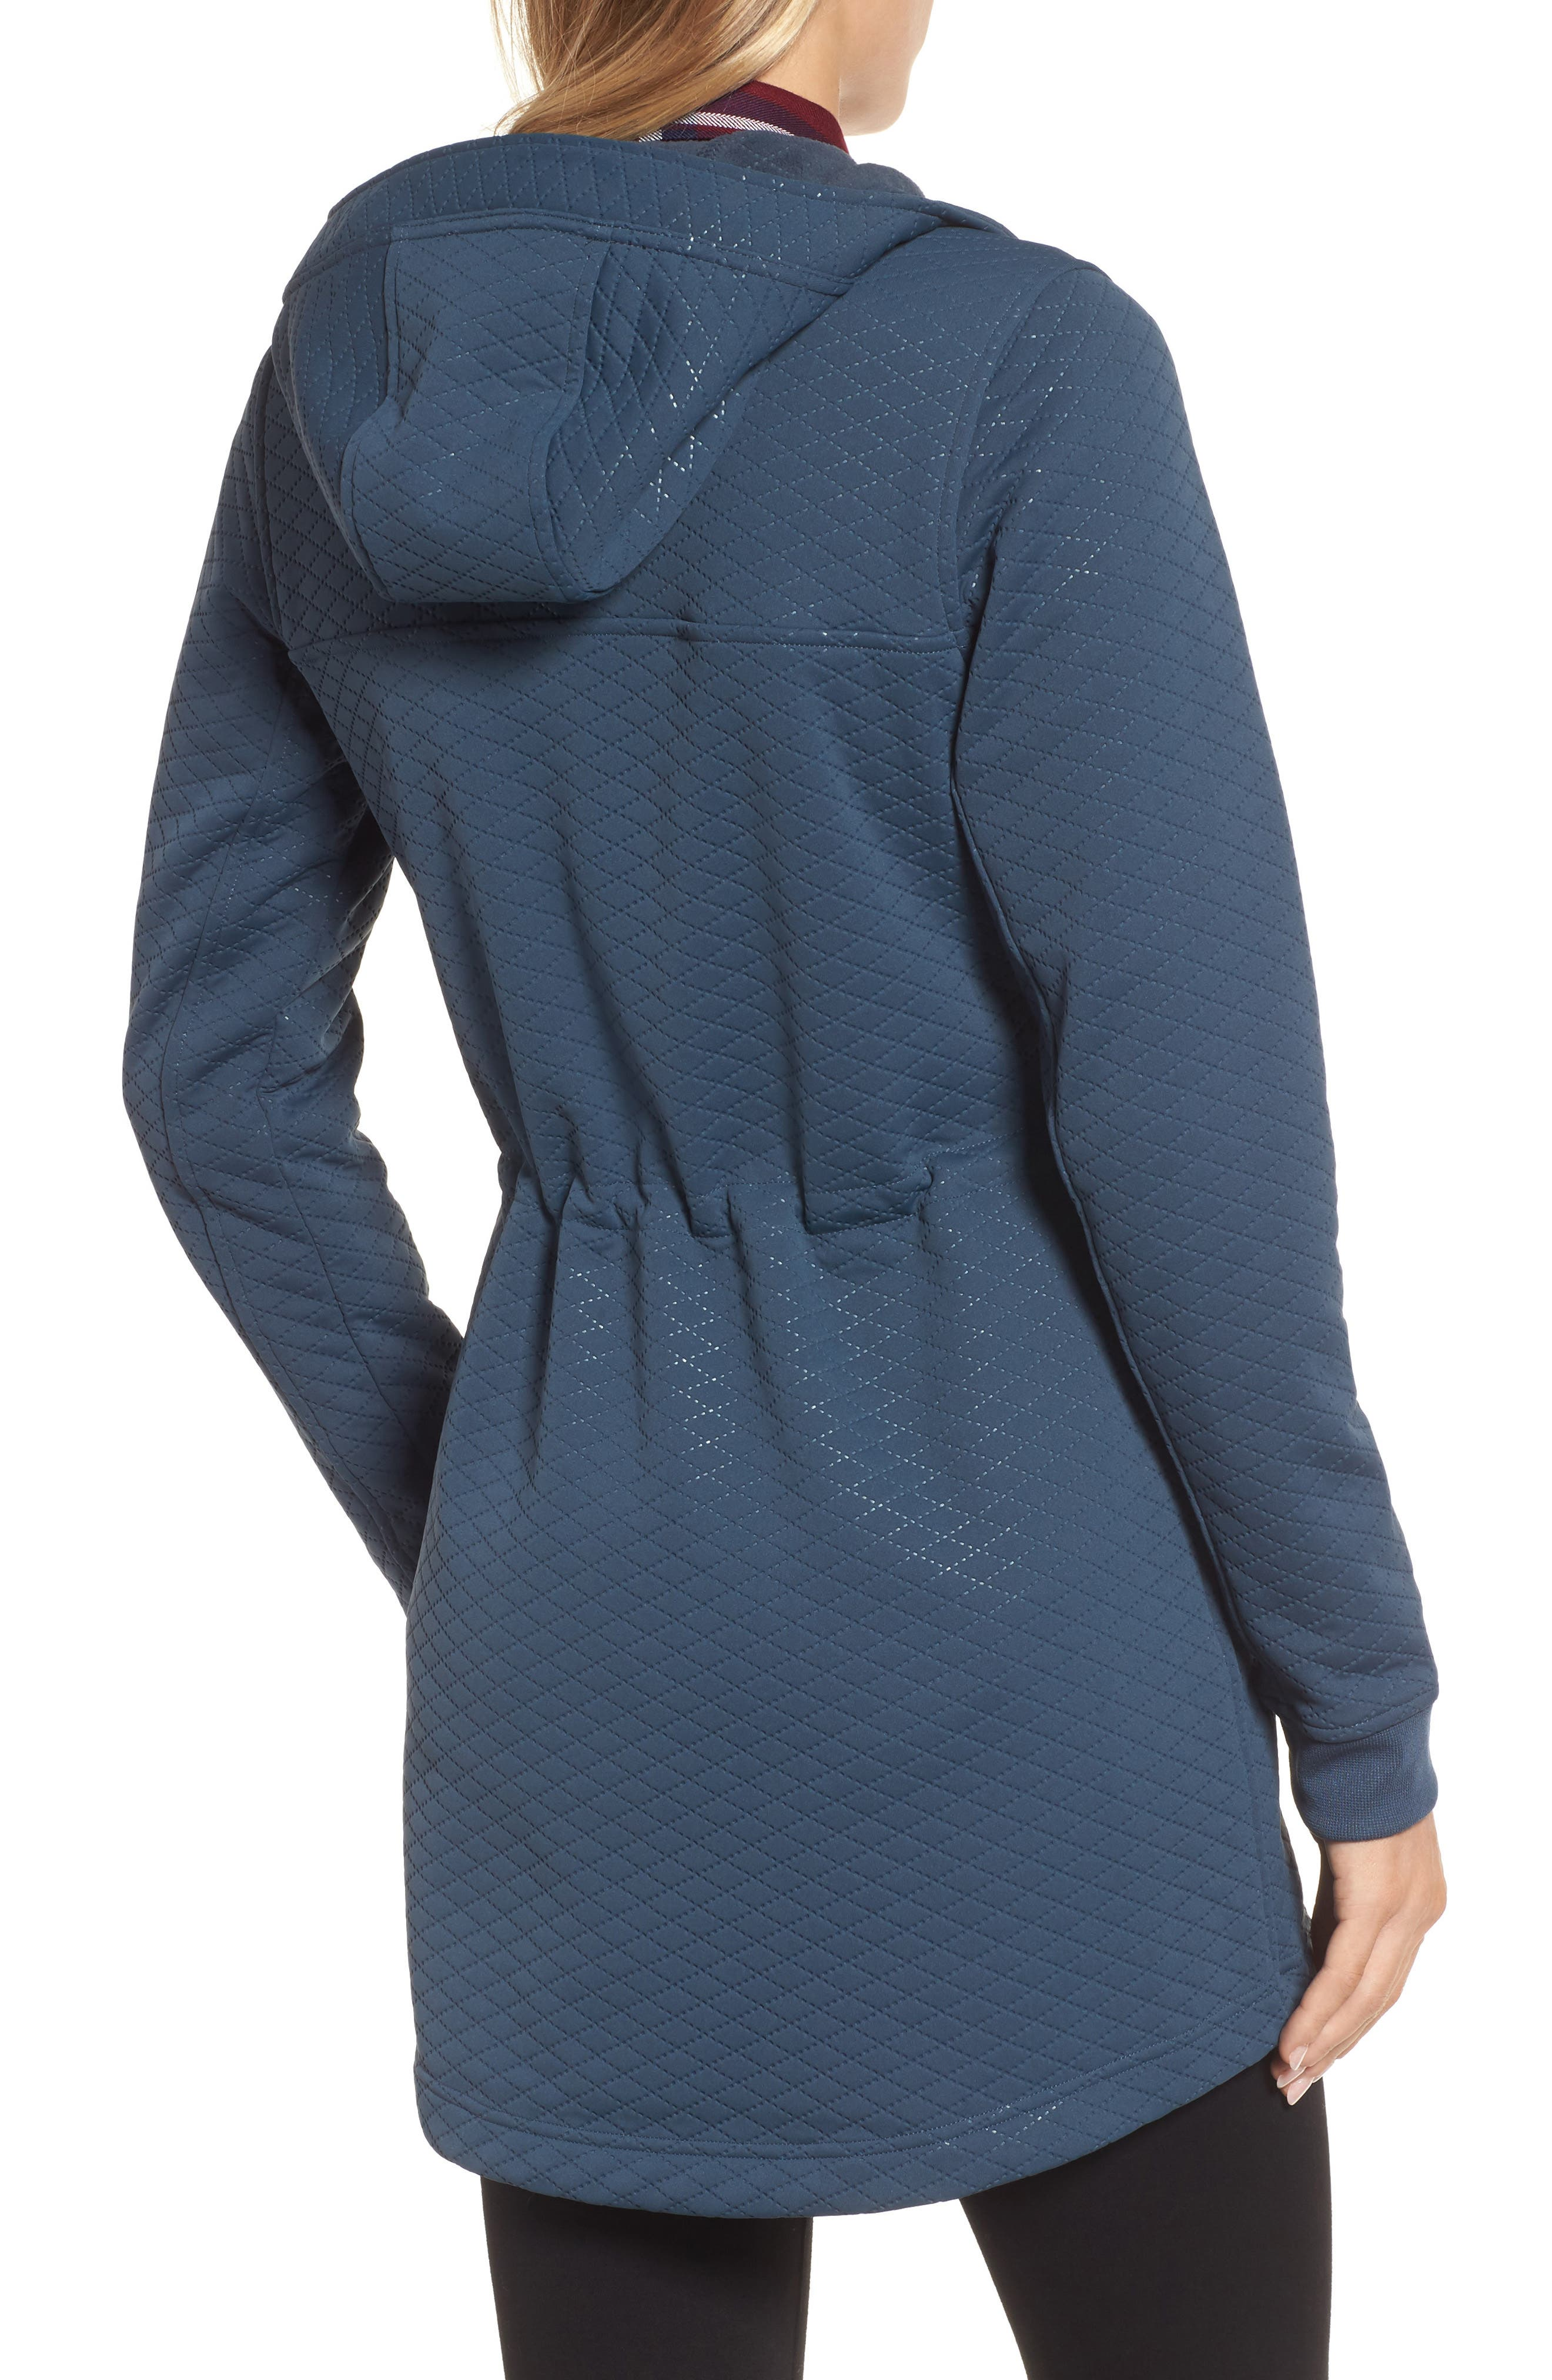 Recover-Up Jacket,                             Alternate thumbnail 4, color,